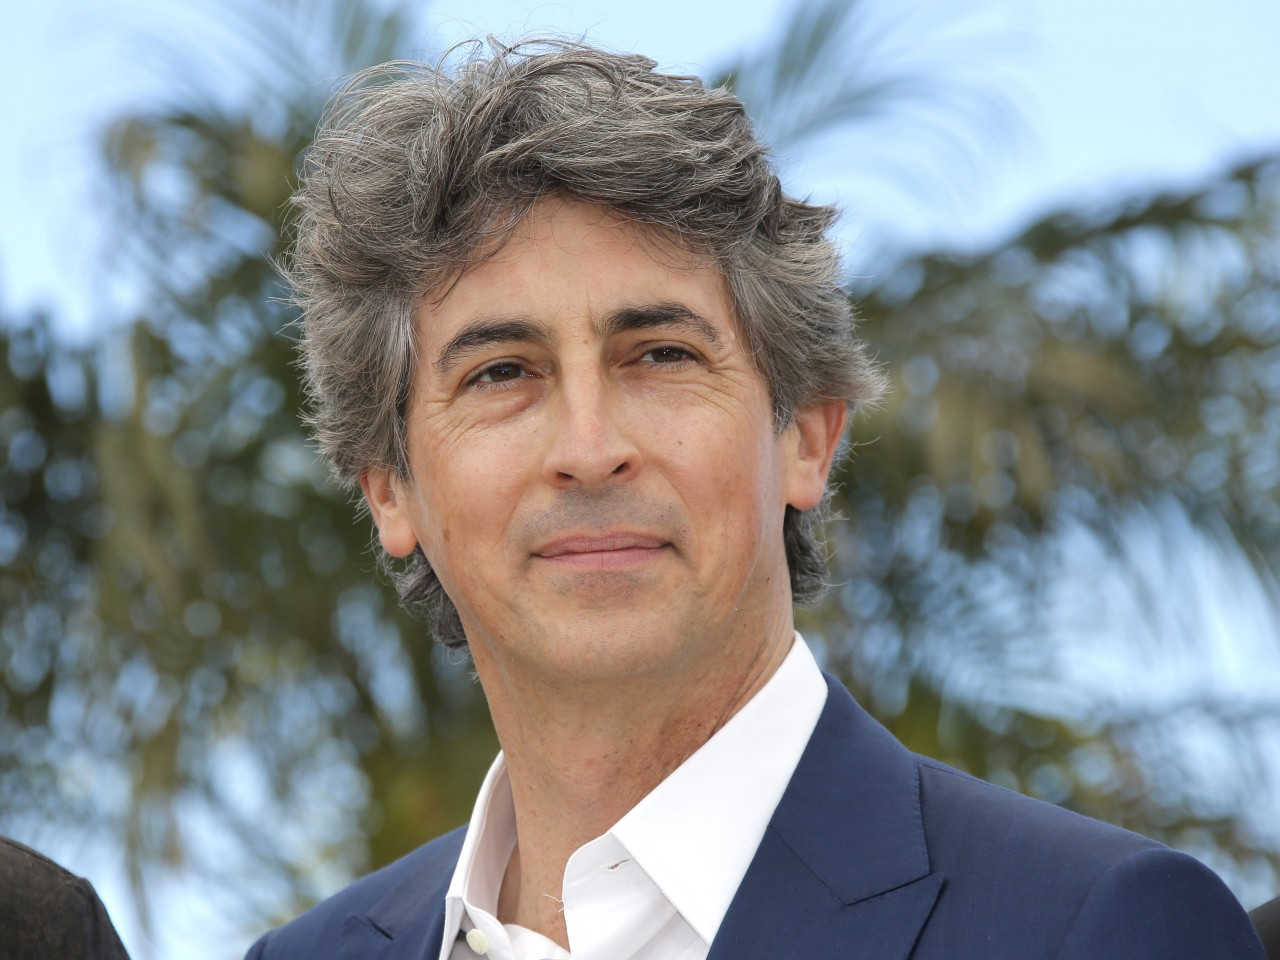 The 56-year old son of father (?) and mother(?), 178 cm tall Alexander Payne in 2017 photo